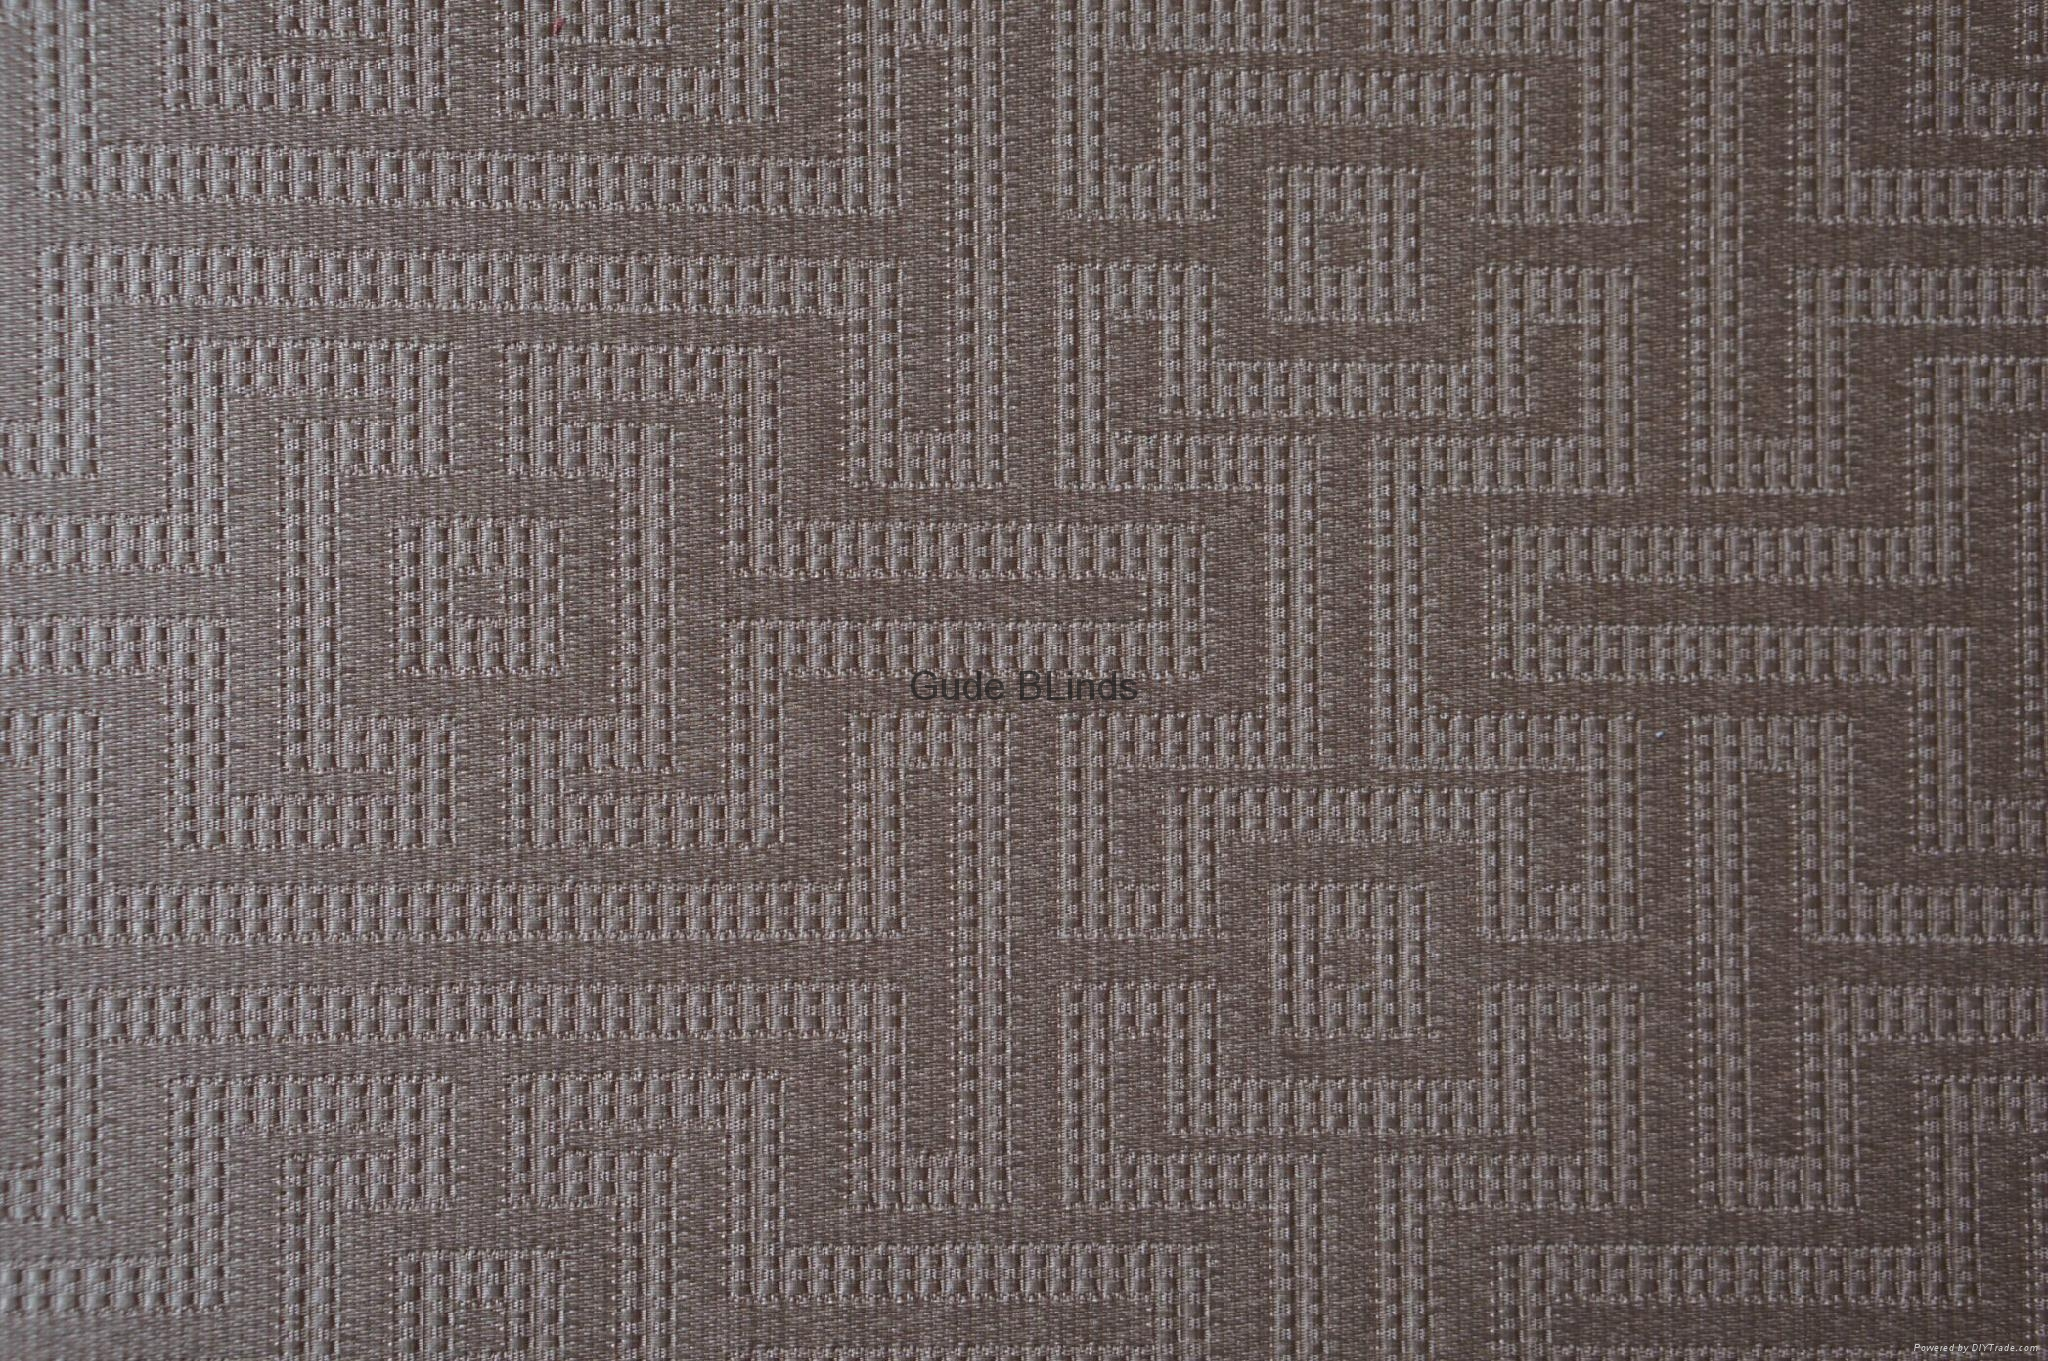 Blackout Roller Blinds Fabric  216 2